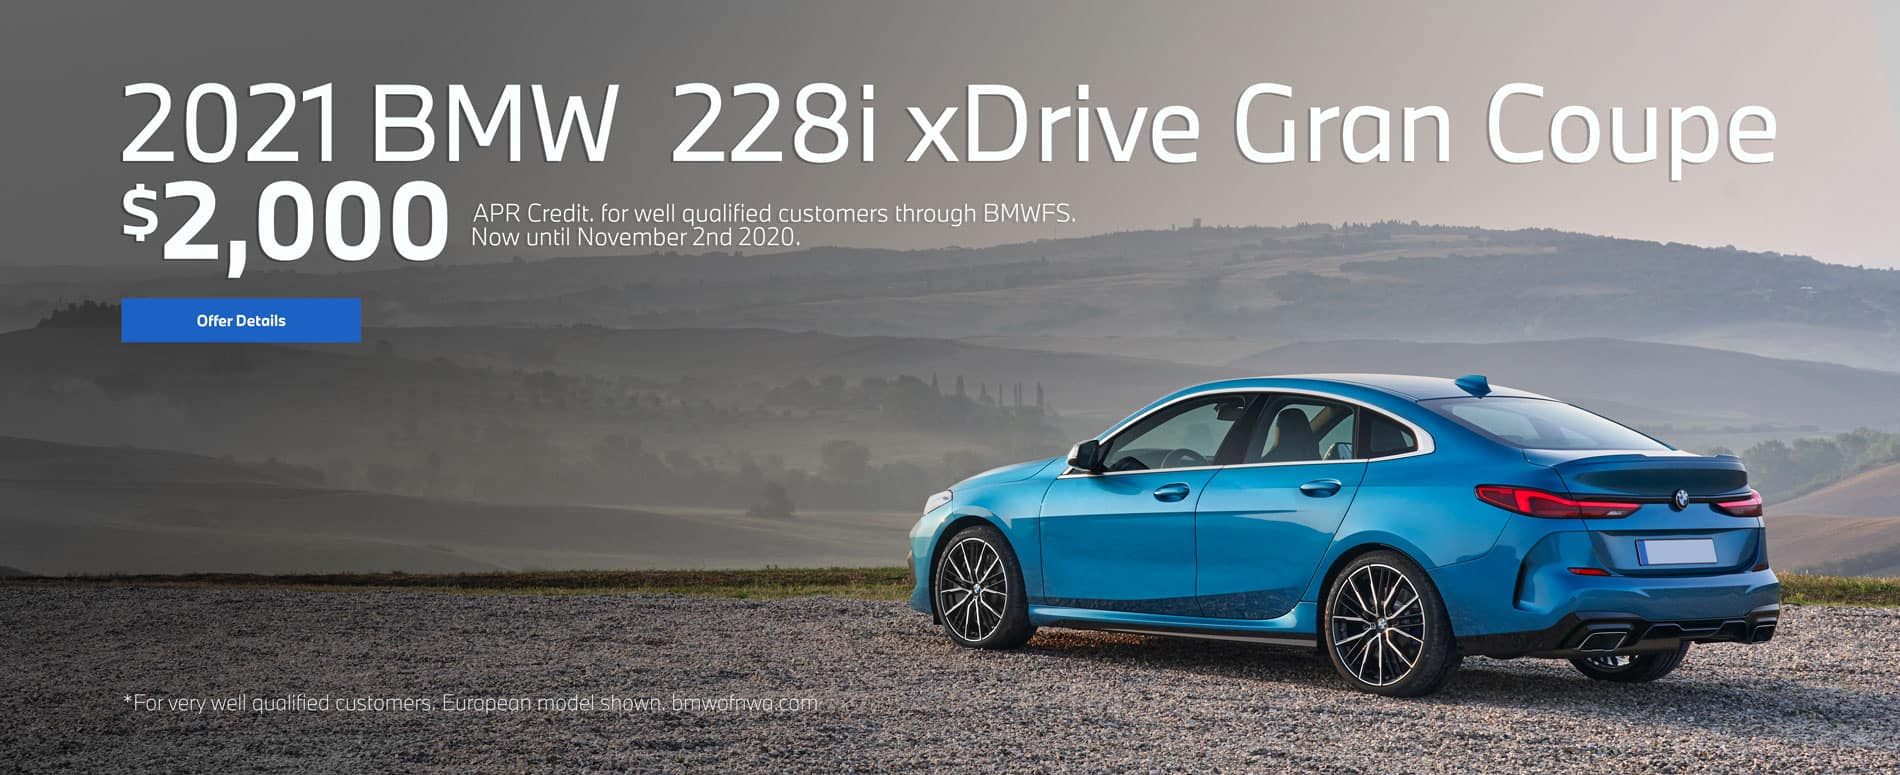 2021 BMW 228i xDrive Gran Coupe, $2000 apr credit